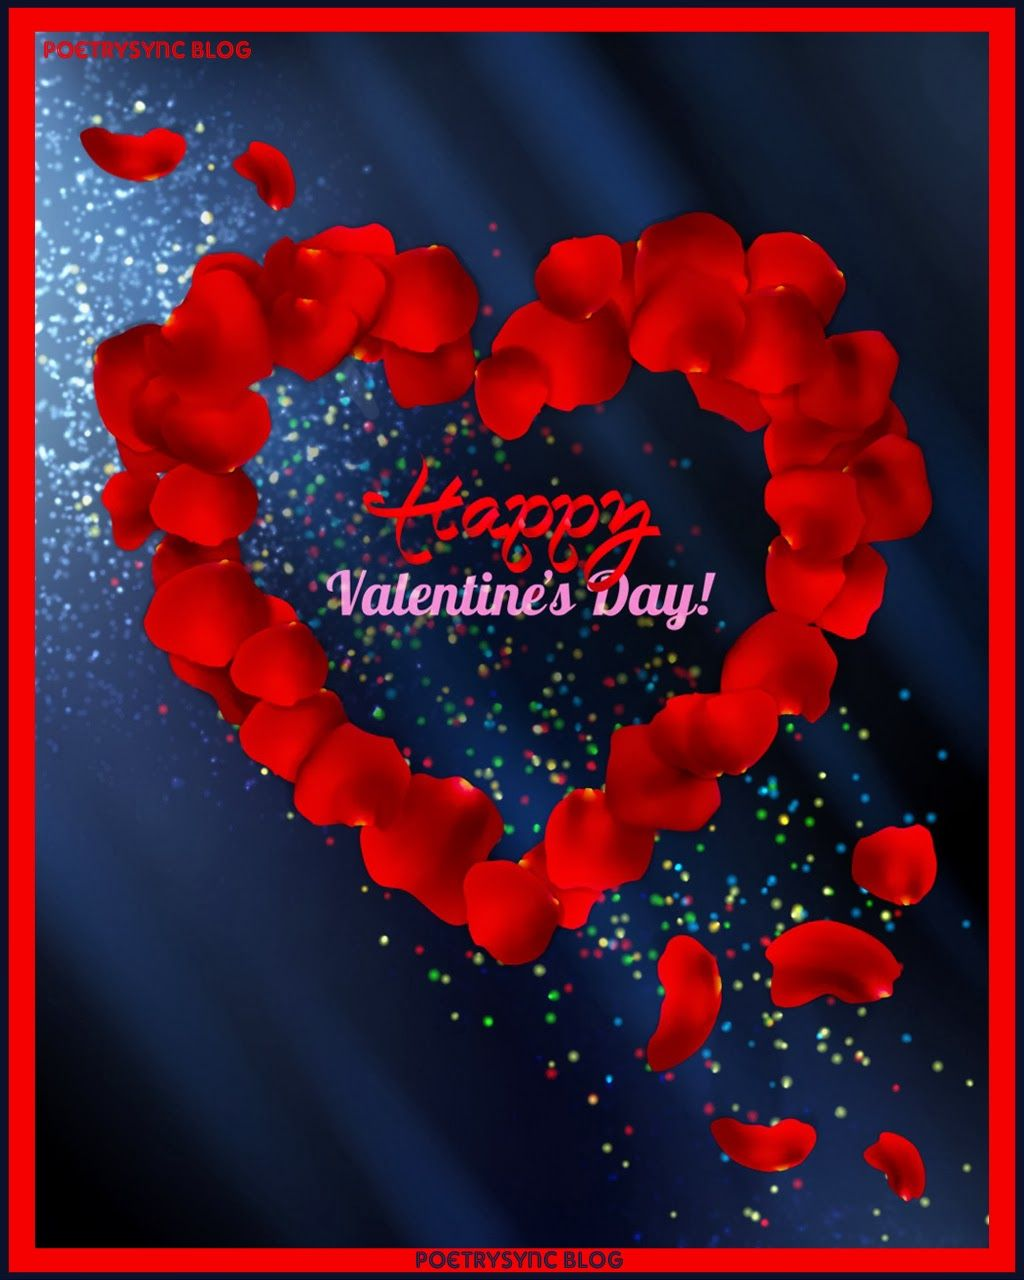 happy valentines day card made with red rose petals u0026 heart for